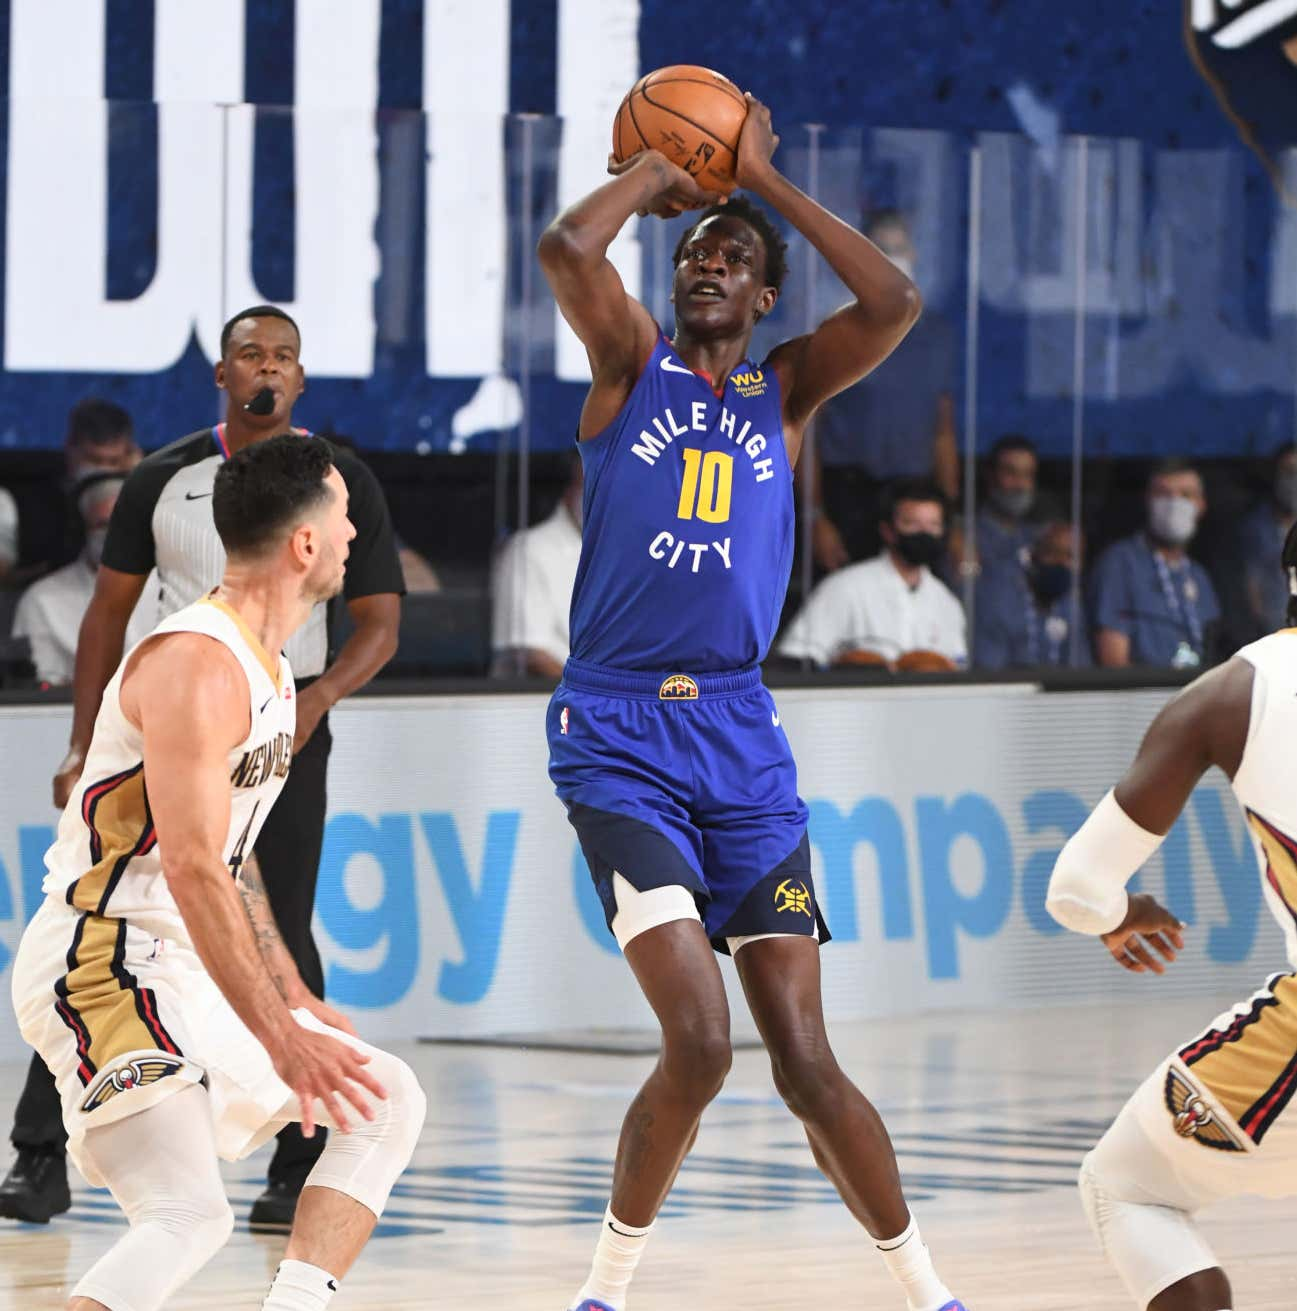 Orlando, FL - JULY 25: Bol Bol #10 of the Denver Nuggets shoots the ball against the New Orleans Pelicans during a scrimmage on July 25, 2020 at The Arena at ESPN Wide World of Sports in Orlando, Florida. NOTE TO USER: User expressly acknowledges and agrees that, by downloading and/or using this Photograph, user is consenting to the terms and conditions of the Getty Images License Agreement. Mandatory Copyright Notice: Copyright 2020 NBAE (Photo by Garrett Ellwood/NBAE via Getty Images)